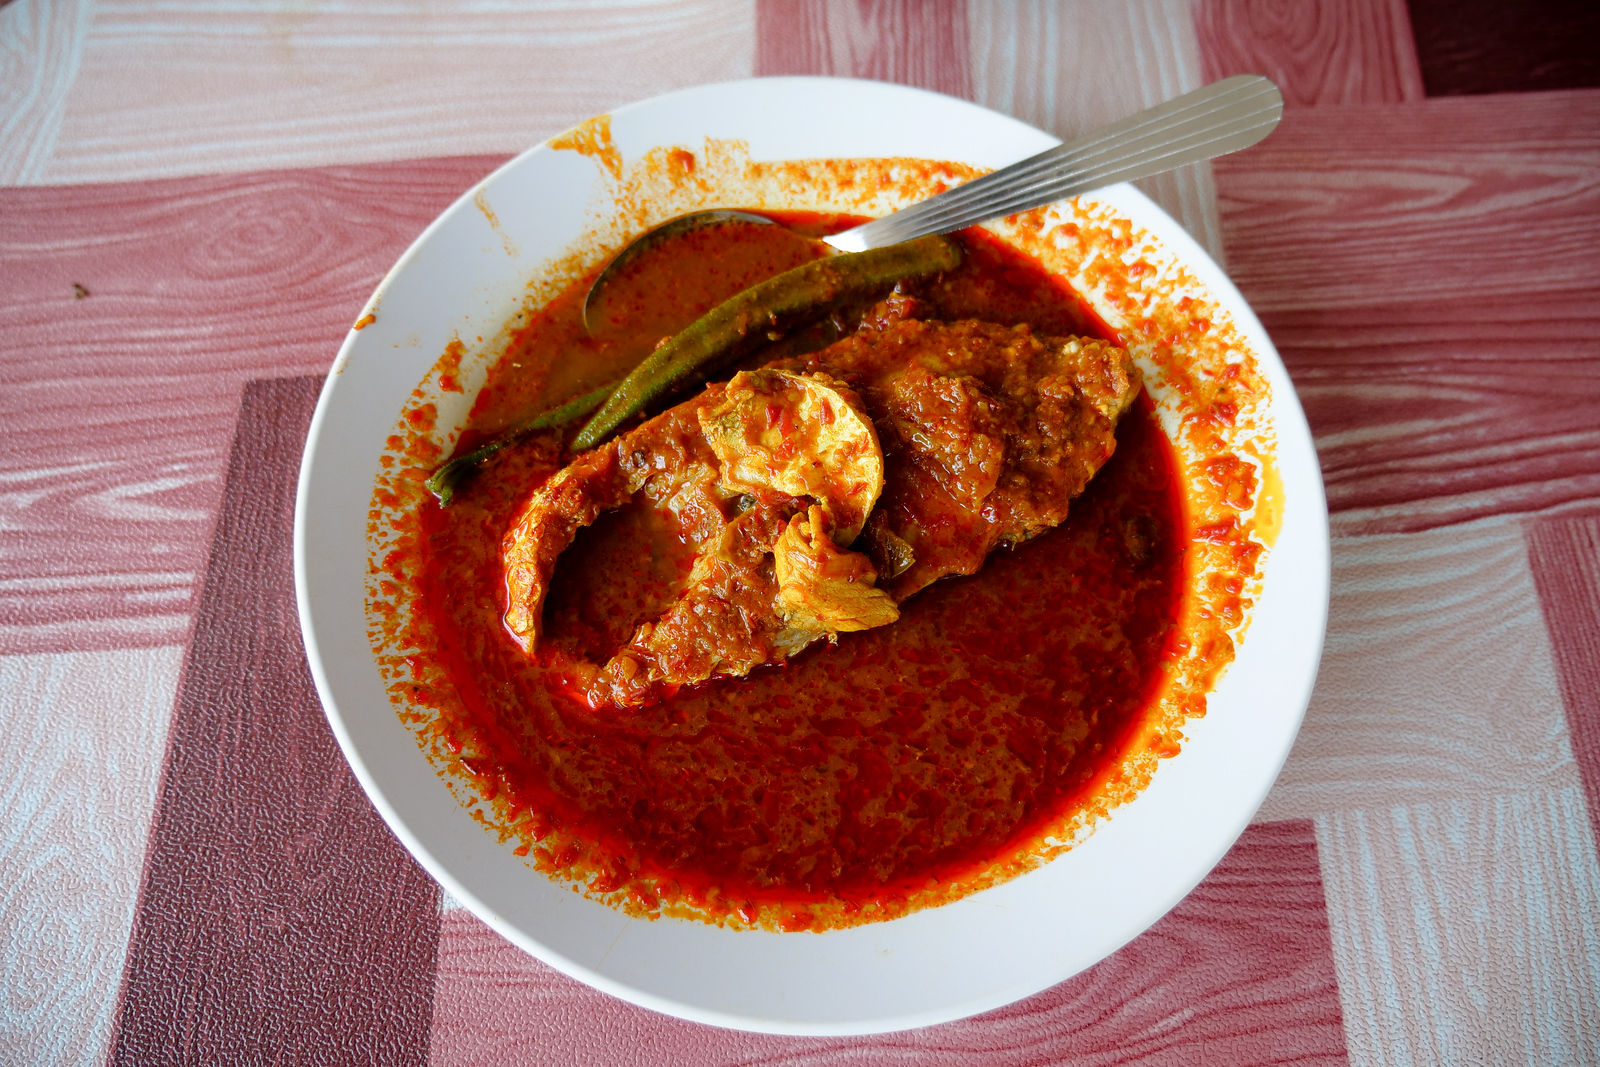 Every fish here is amazing when covered in Asam Pedas curry soup